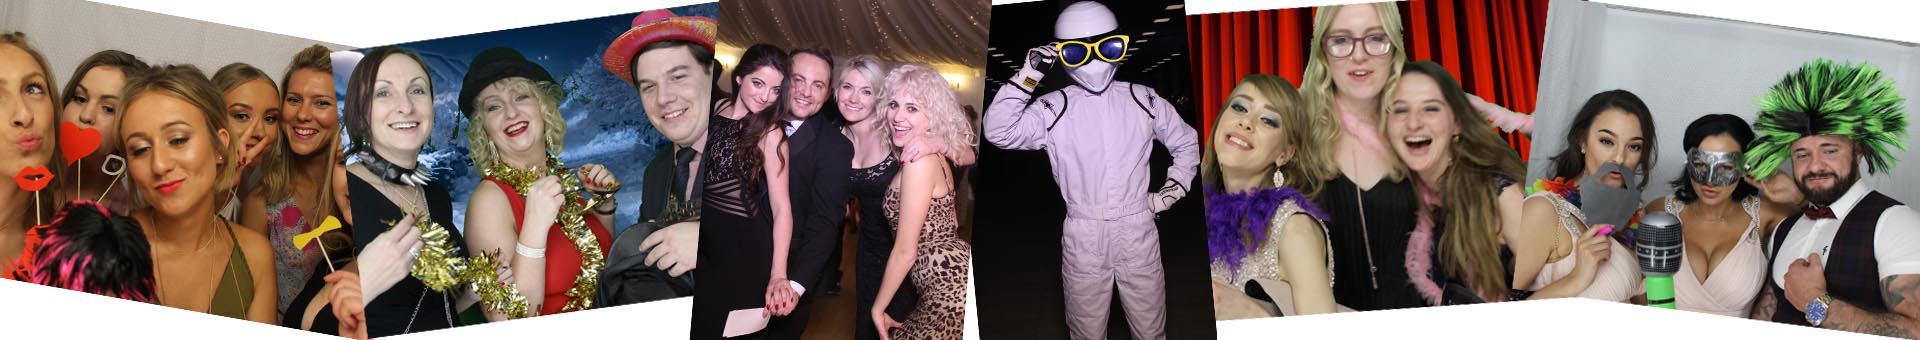 images from photo booths hired in Surrey